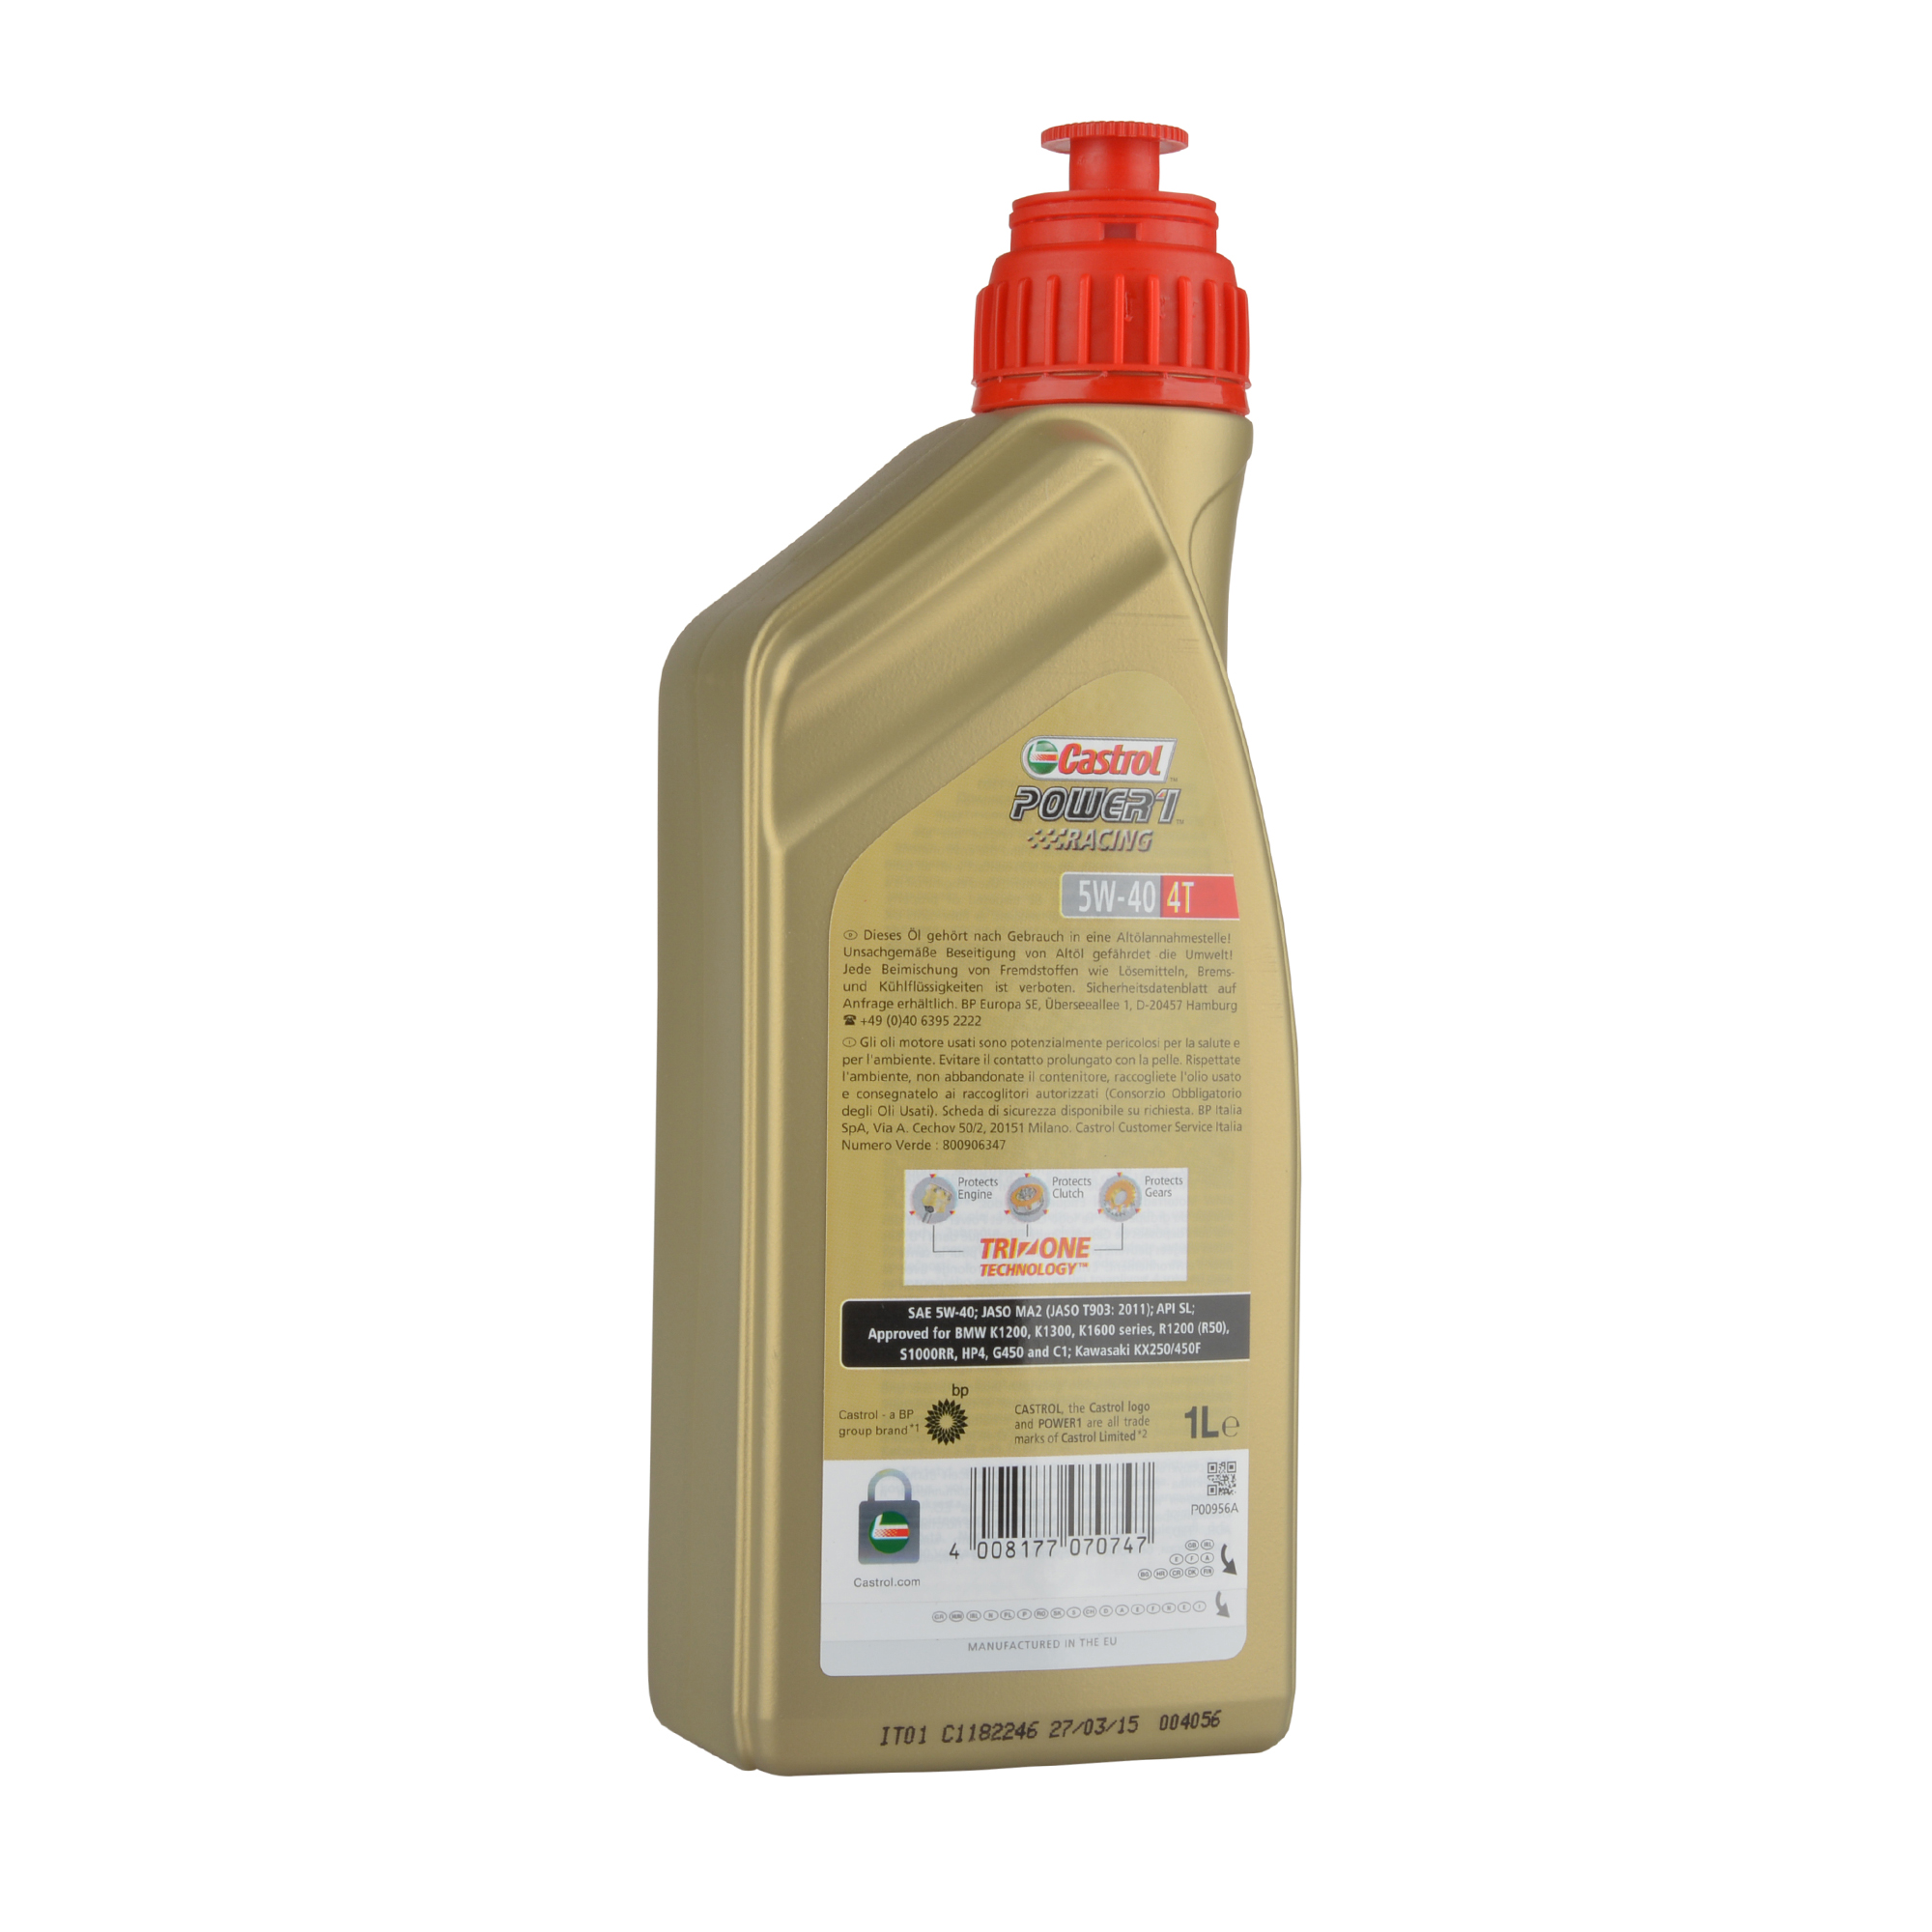 Castrol Power 1 Racing 4T 5W-40 - 1 Liter – Bild 2